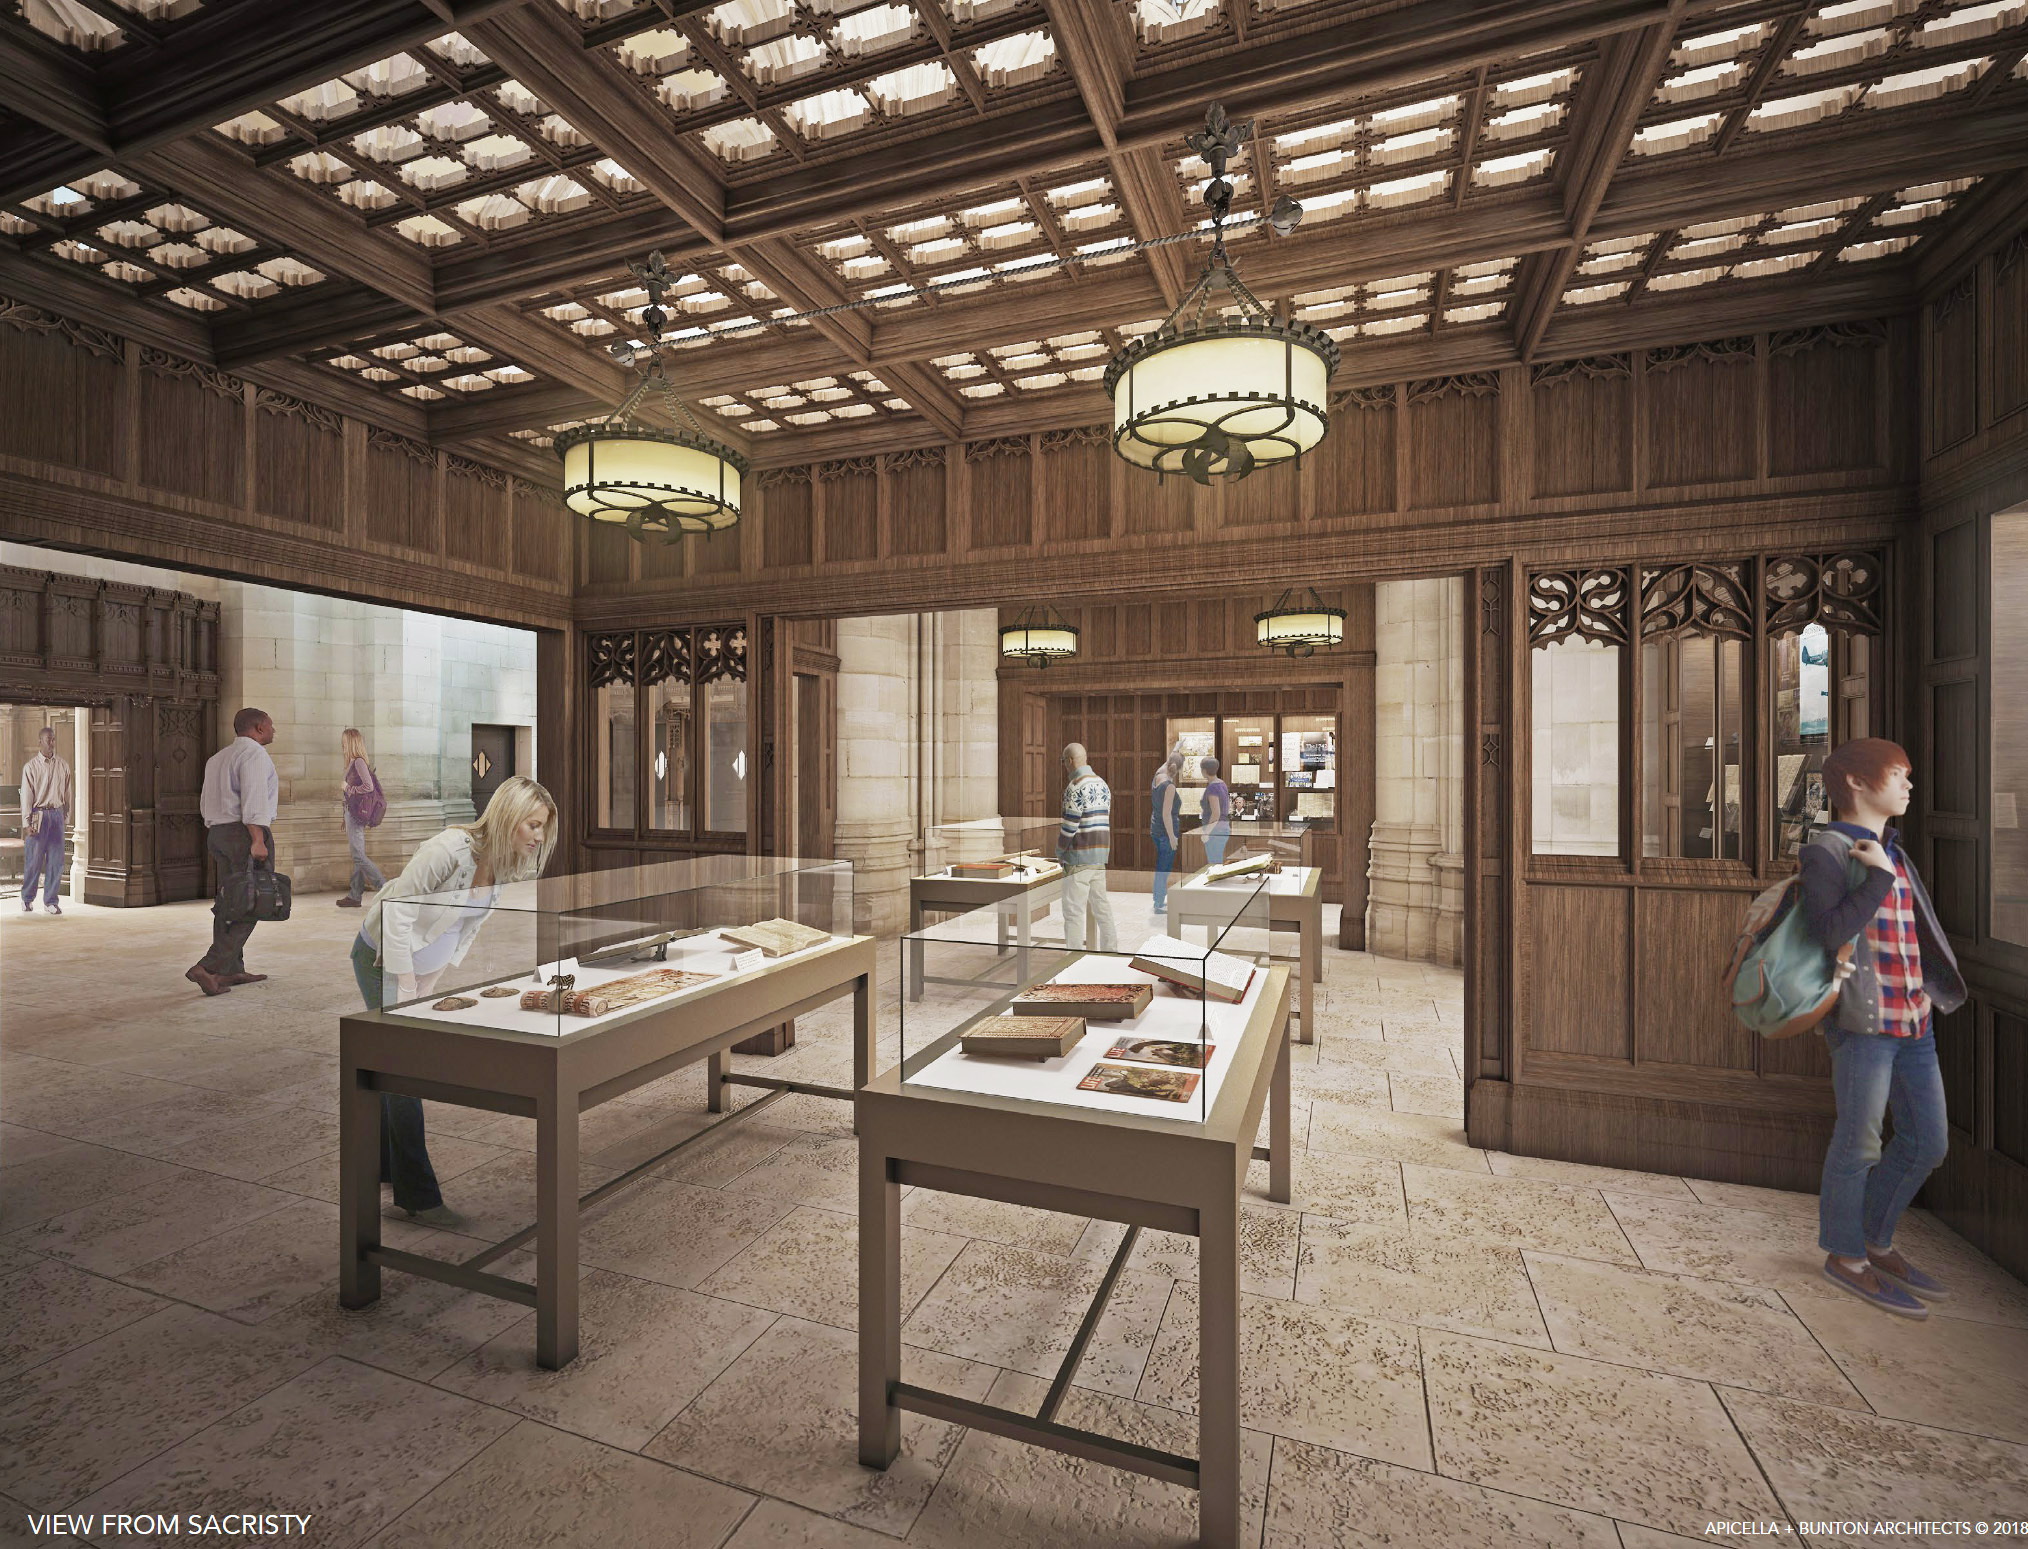 Architect's rendering of gallery space